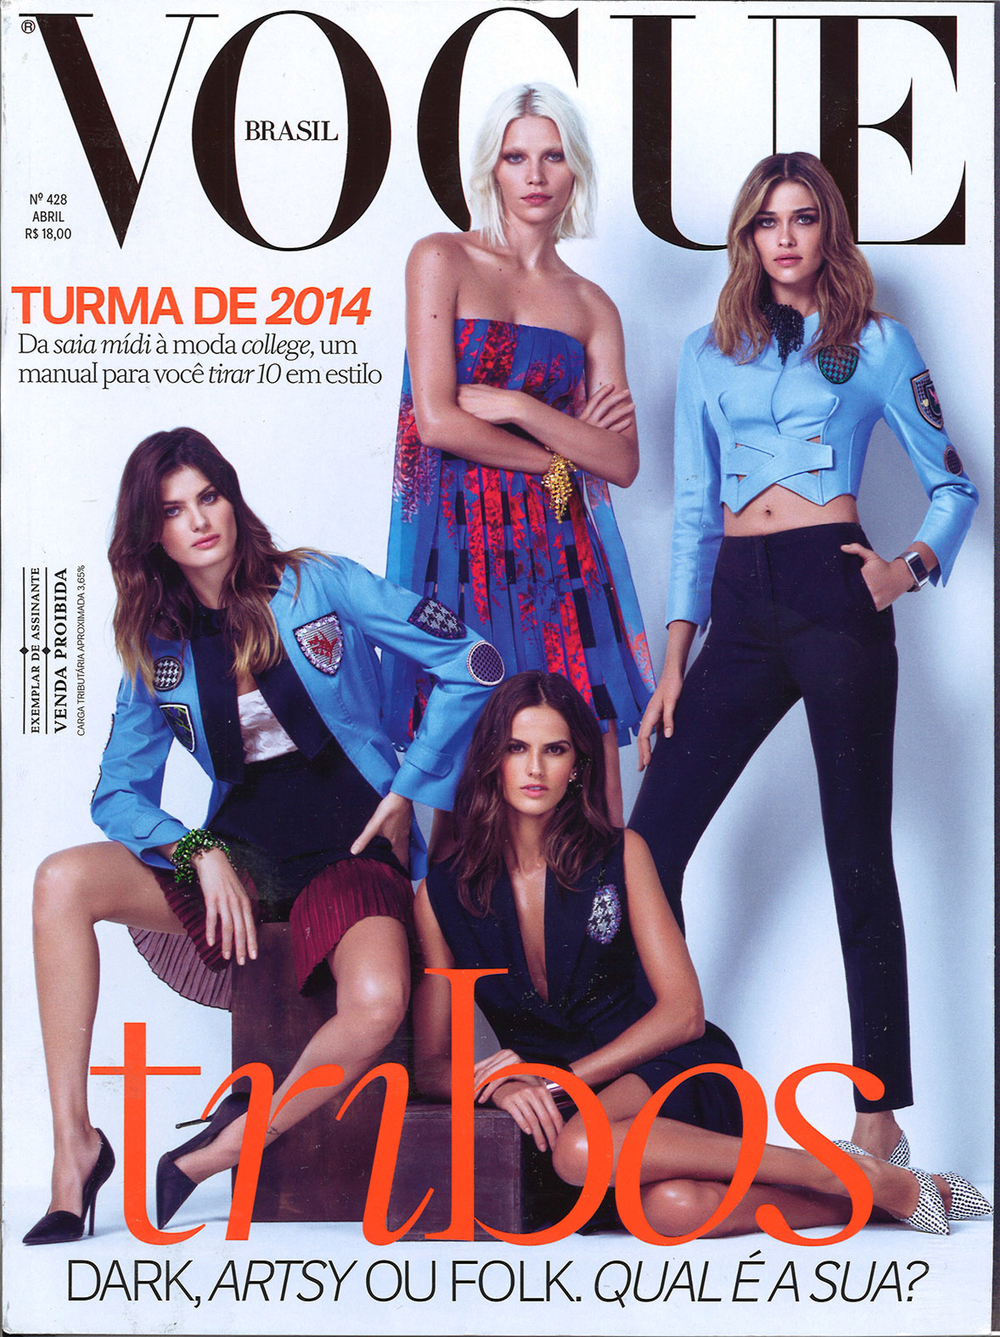 Vogue_BR_April_2014-1.jpg